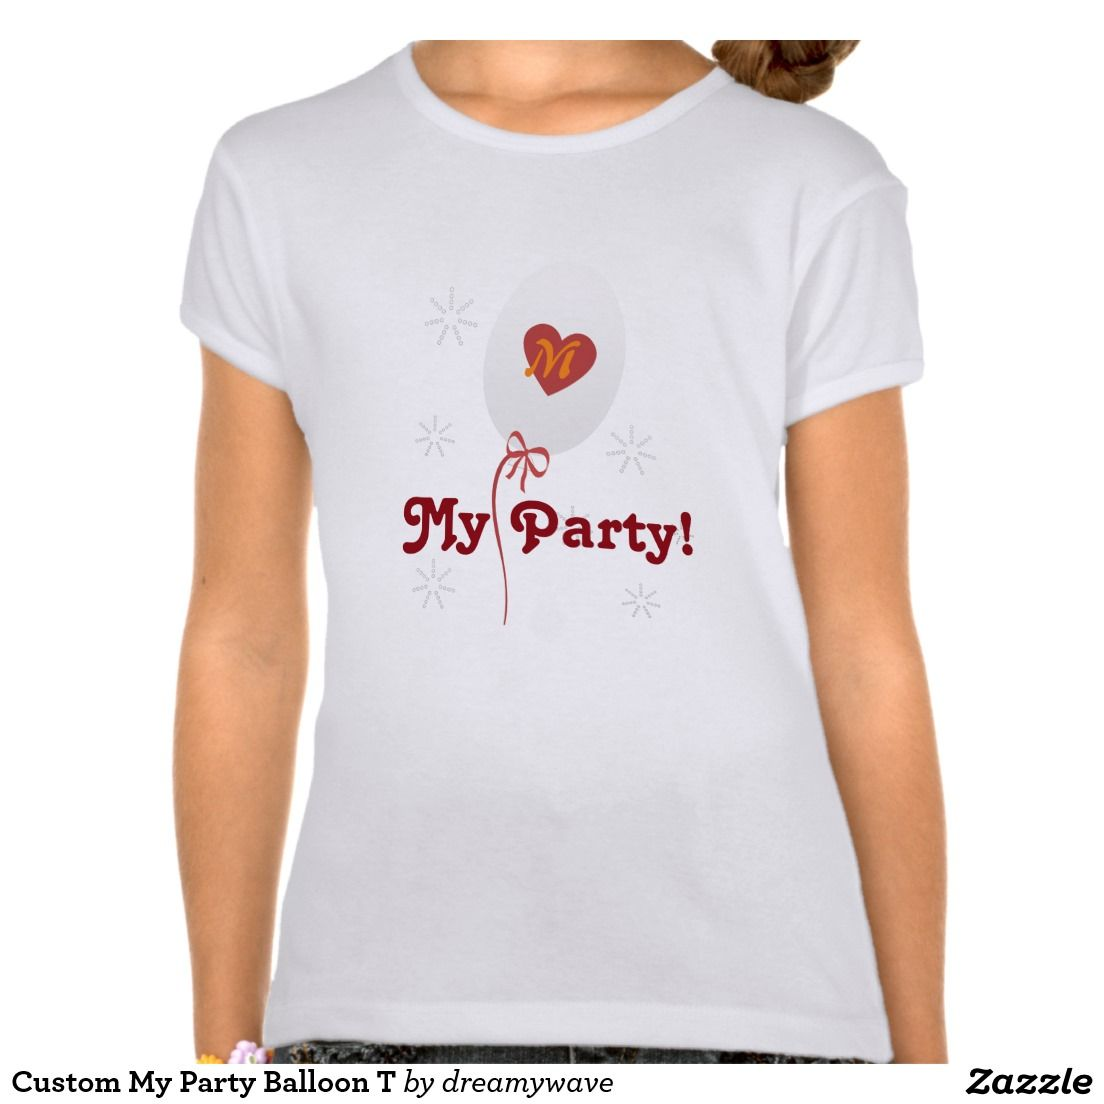 Custom My Party Balloon T T-Shirt | T shirts, Shirts and Parties